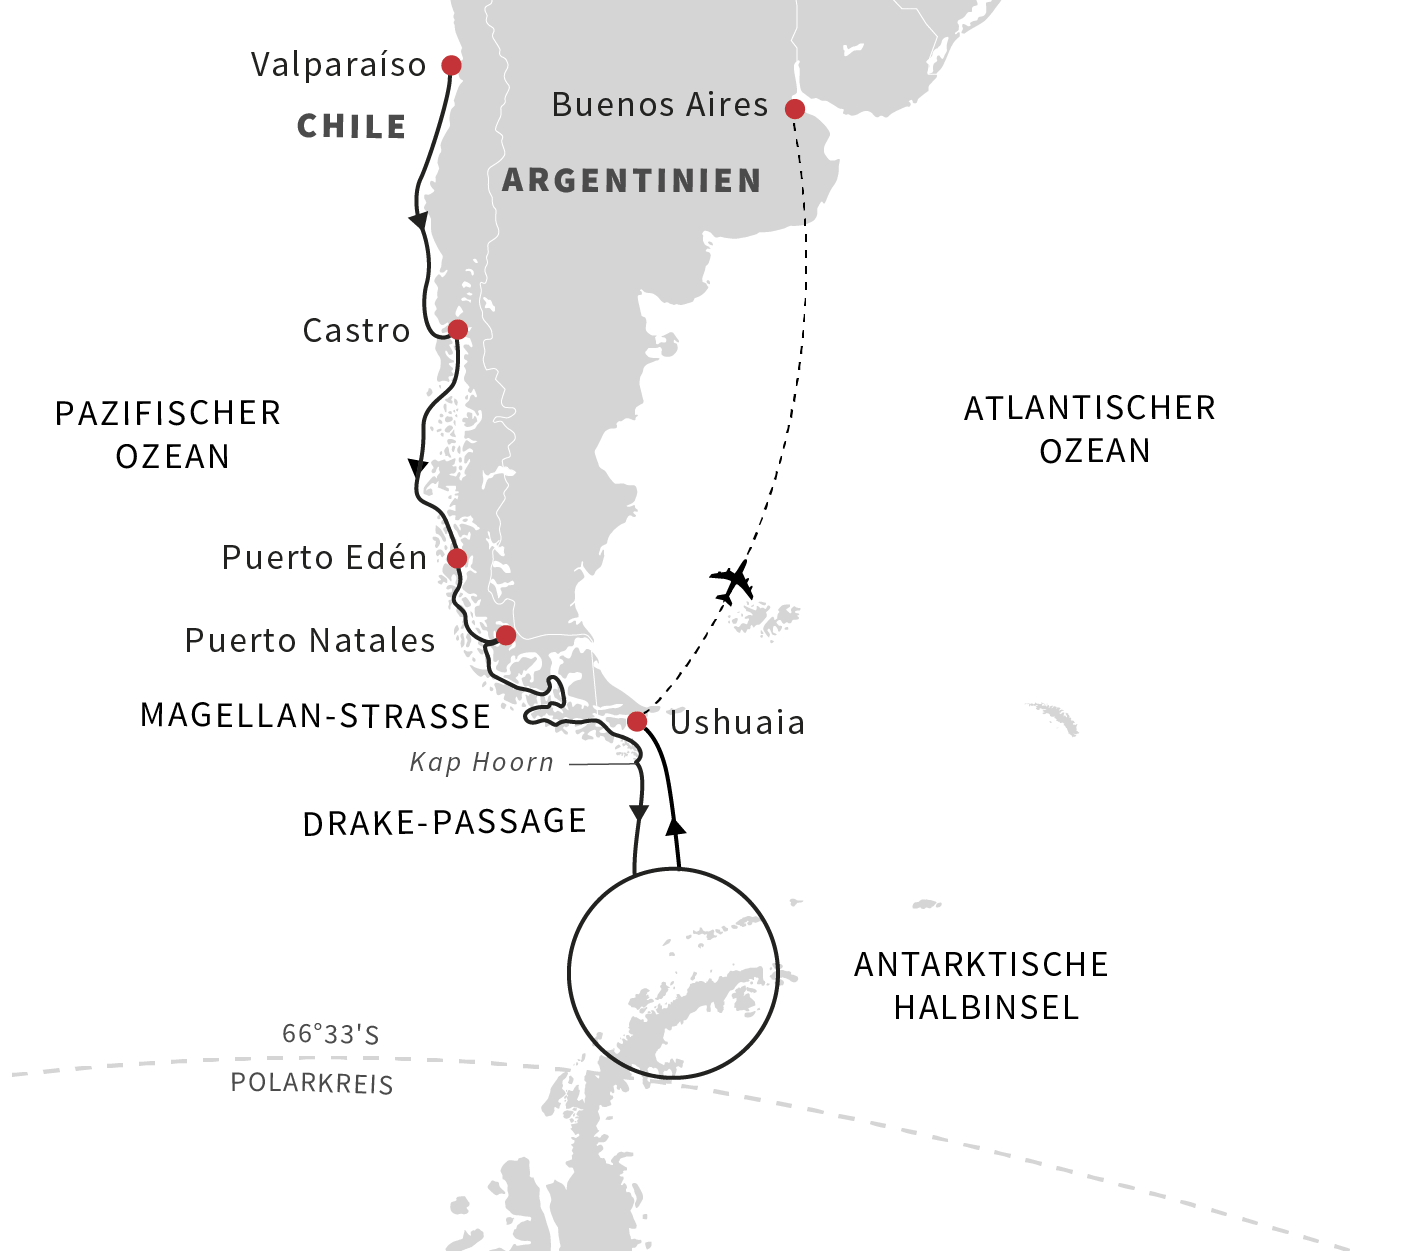 Expeditionsreise Patagonien und Antarktis